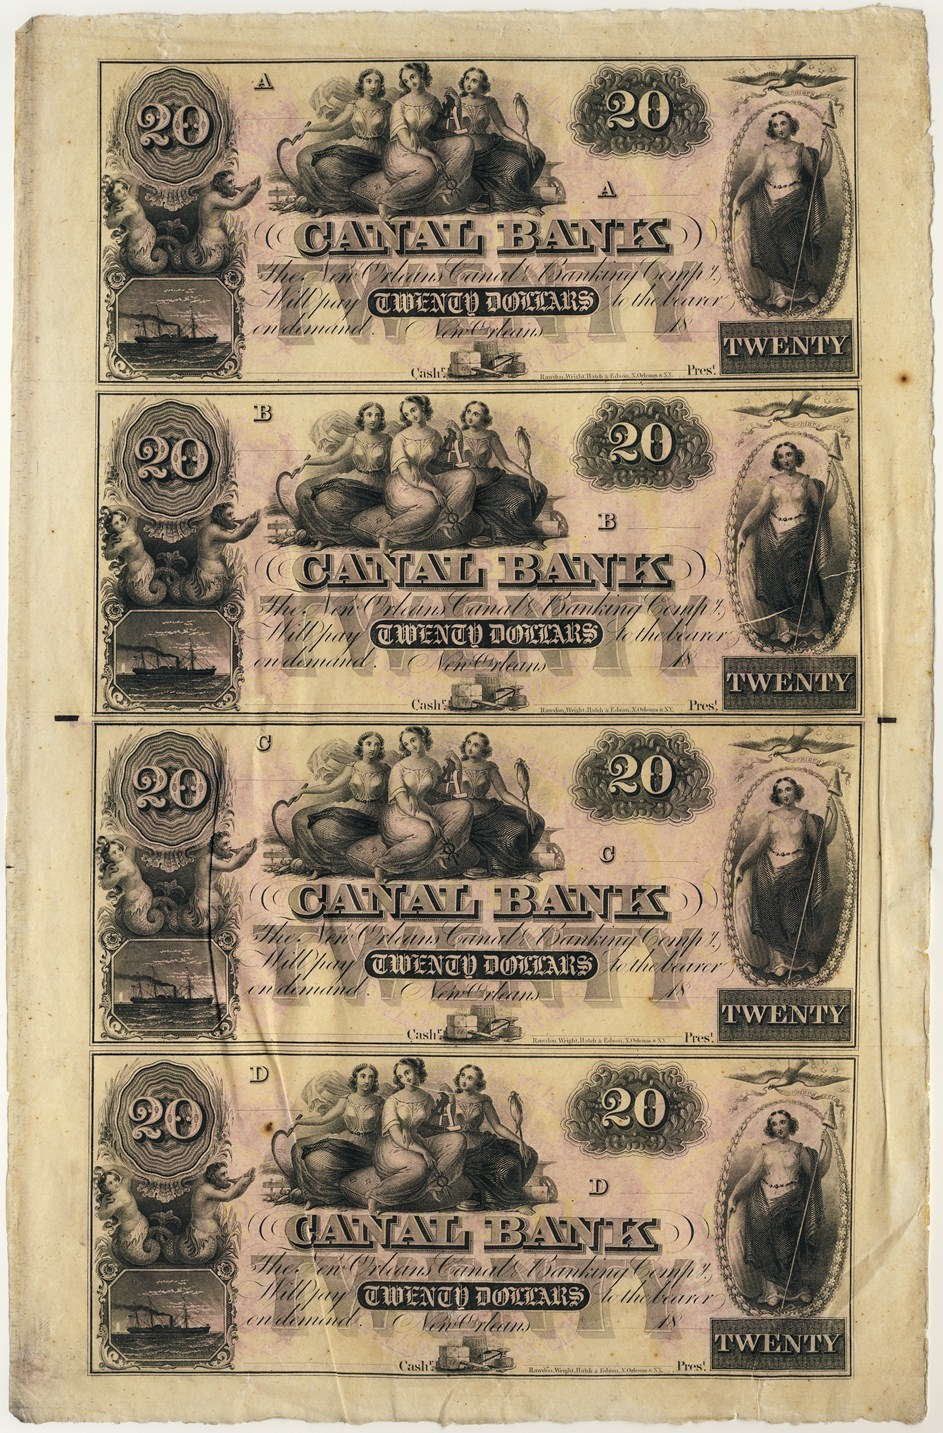 4 x 20 Dollar 1831-1860 USA - Canal Bank Sheet of Large Size Obsolete Bank Notes: Canal Bank, New Orleans, Louisiana Very Fine